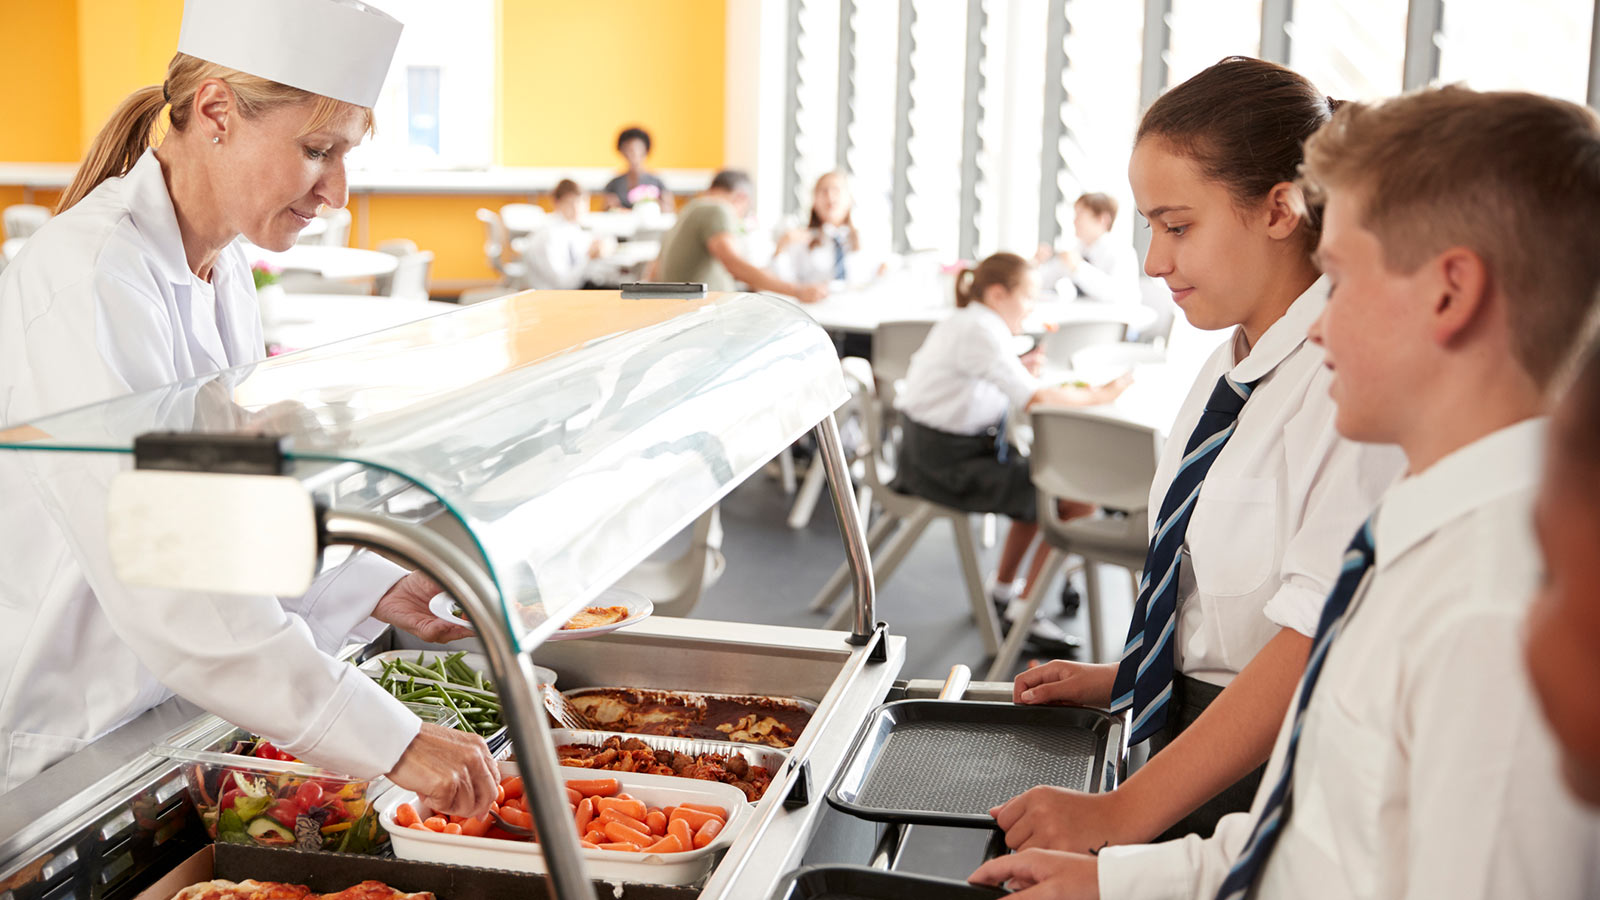 Image featuring pupils in a school cafeteria.